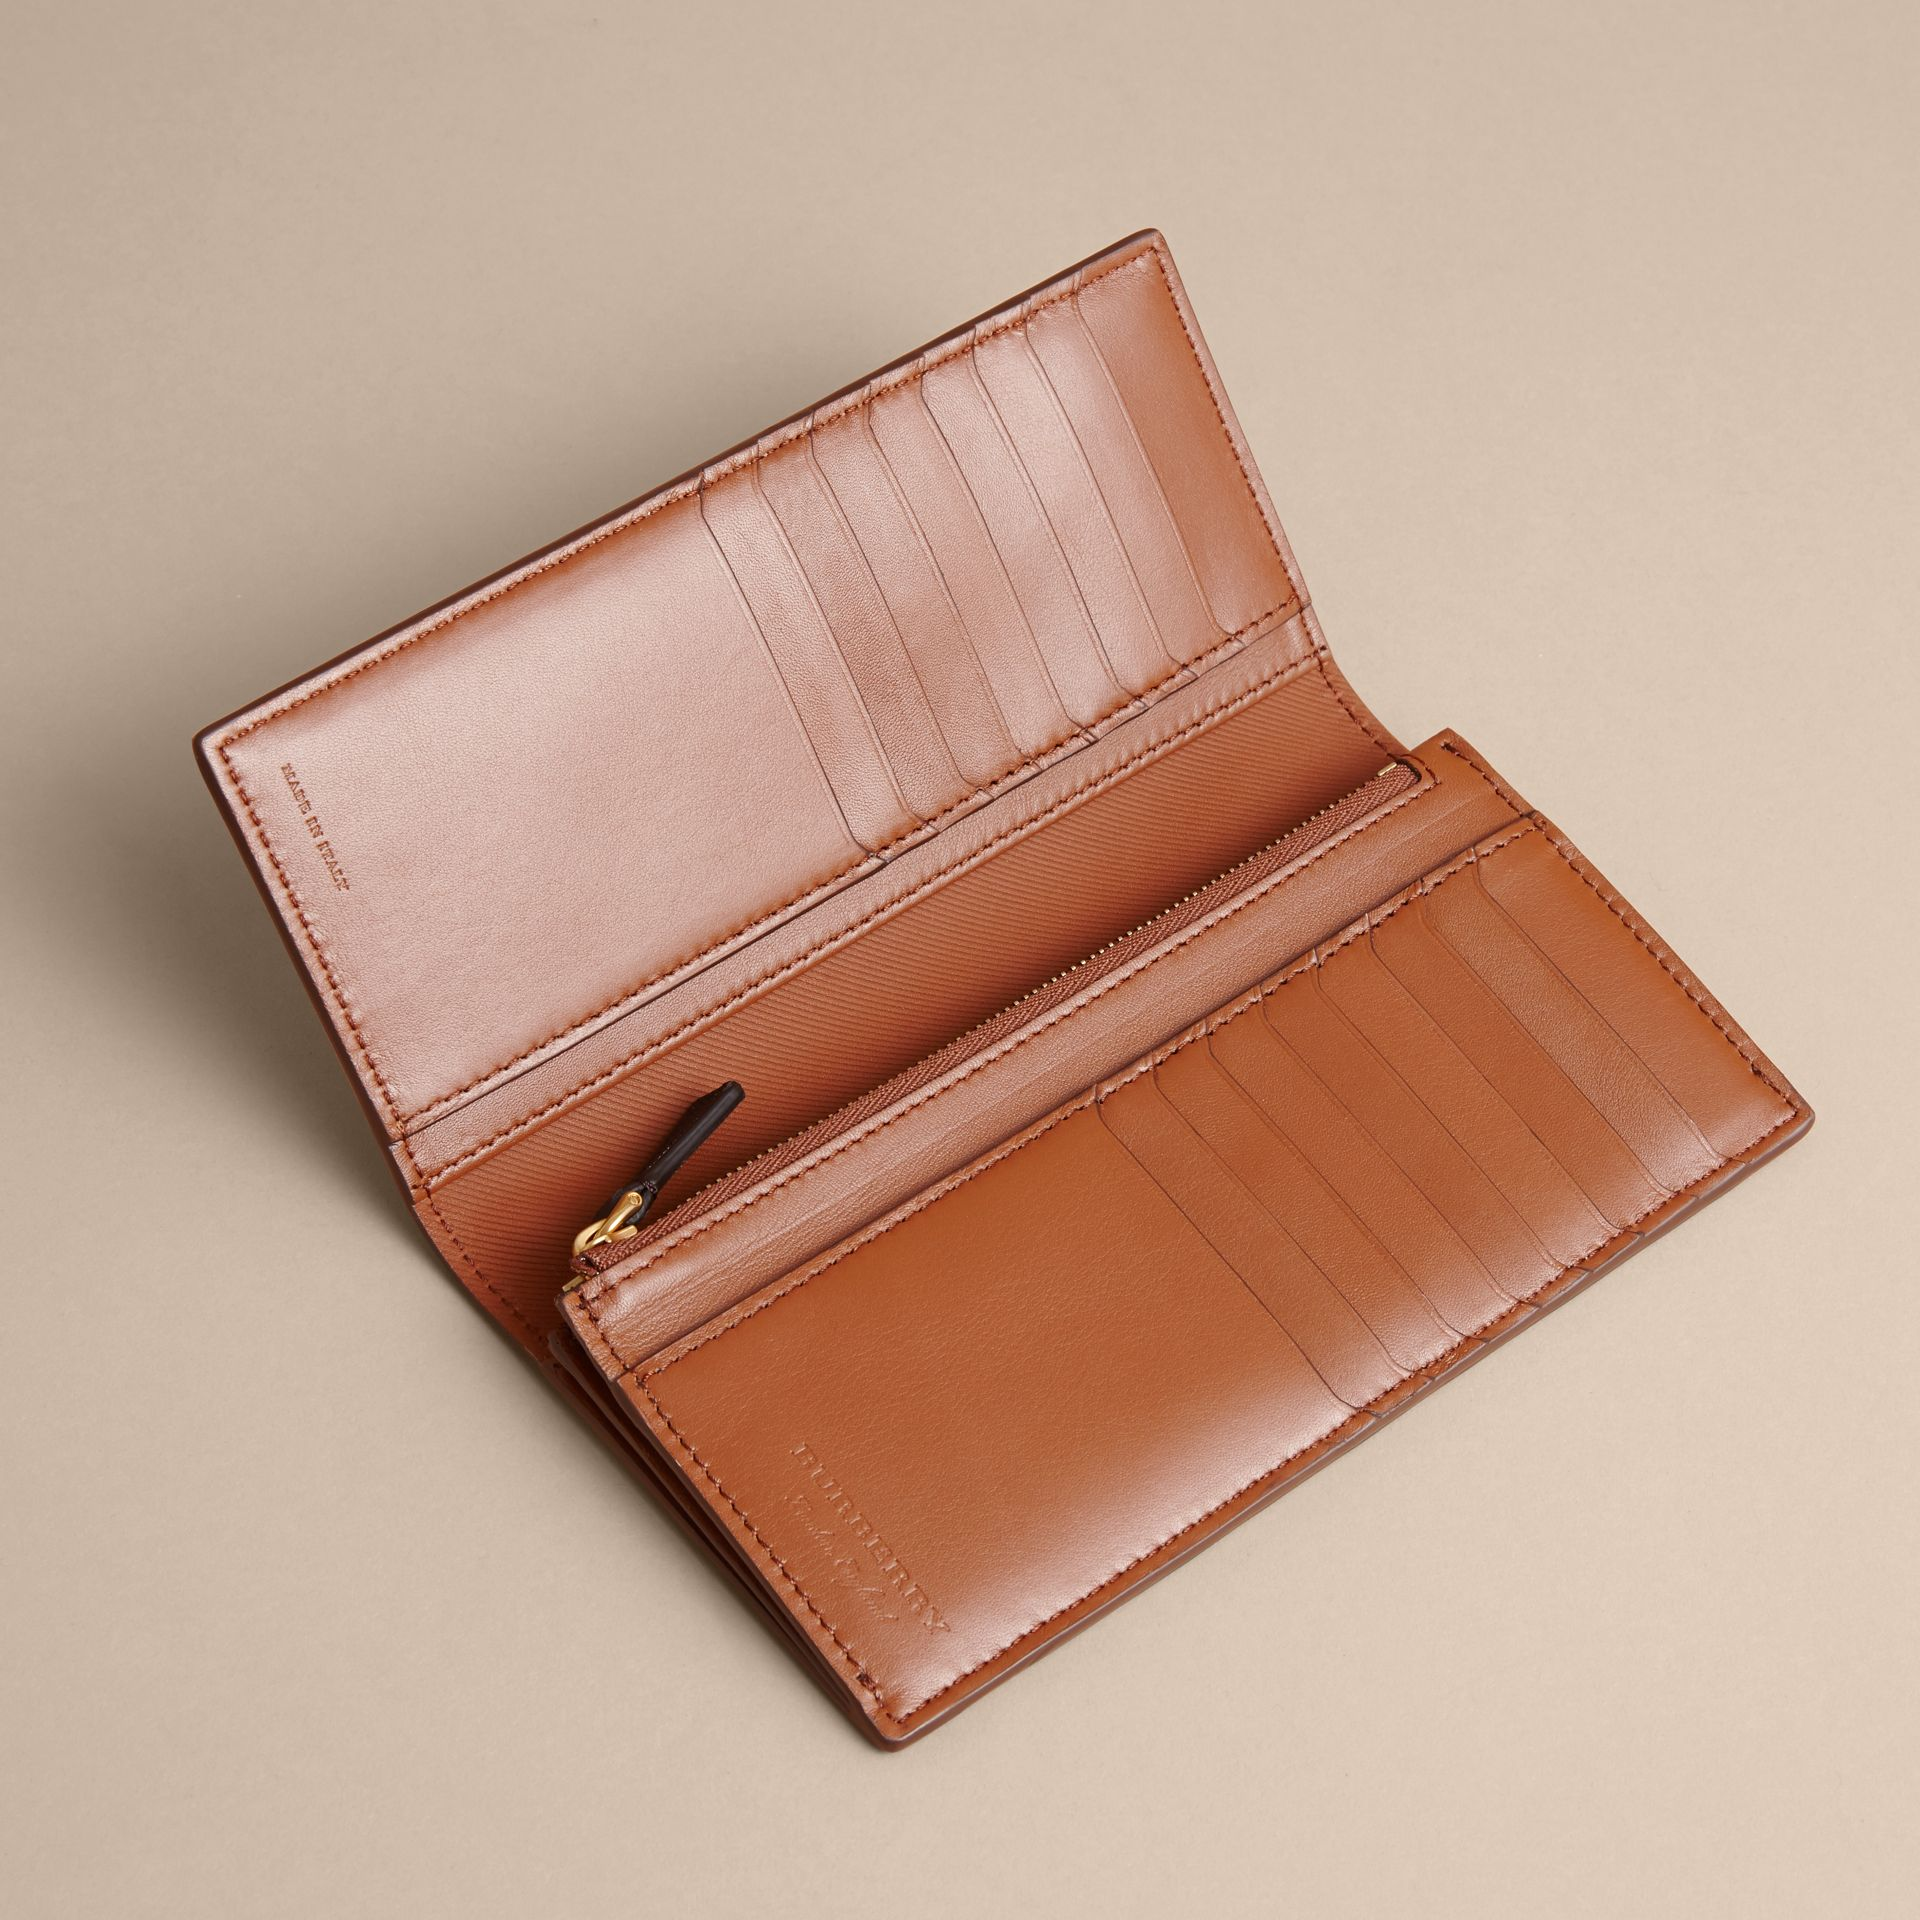 Trench Leather Continental Wallet in Tan - Men | Burberry - gallery image 5